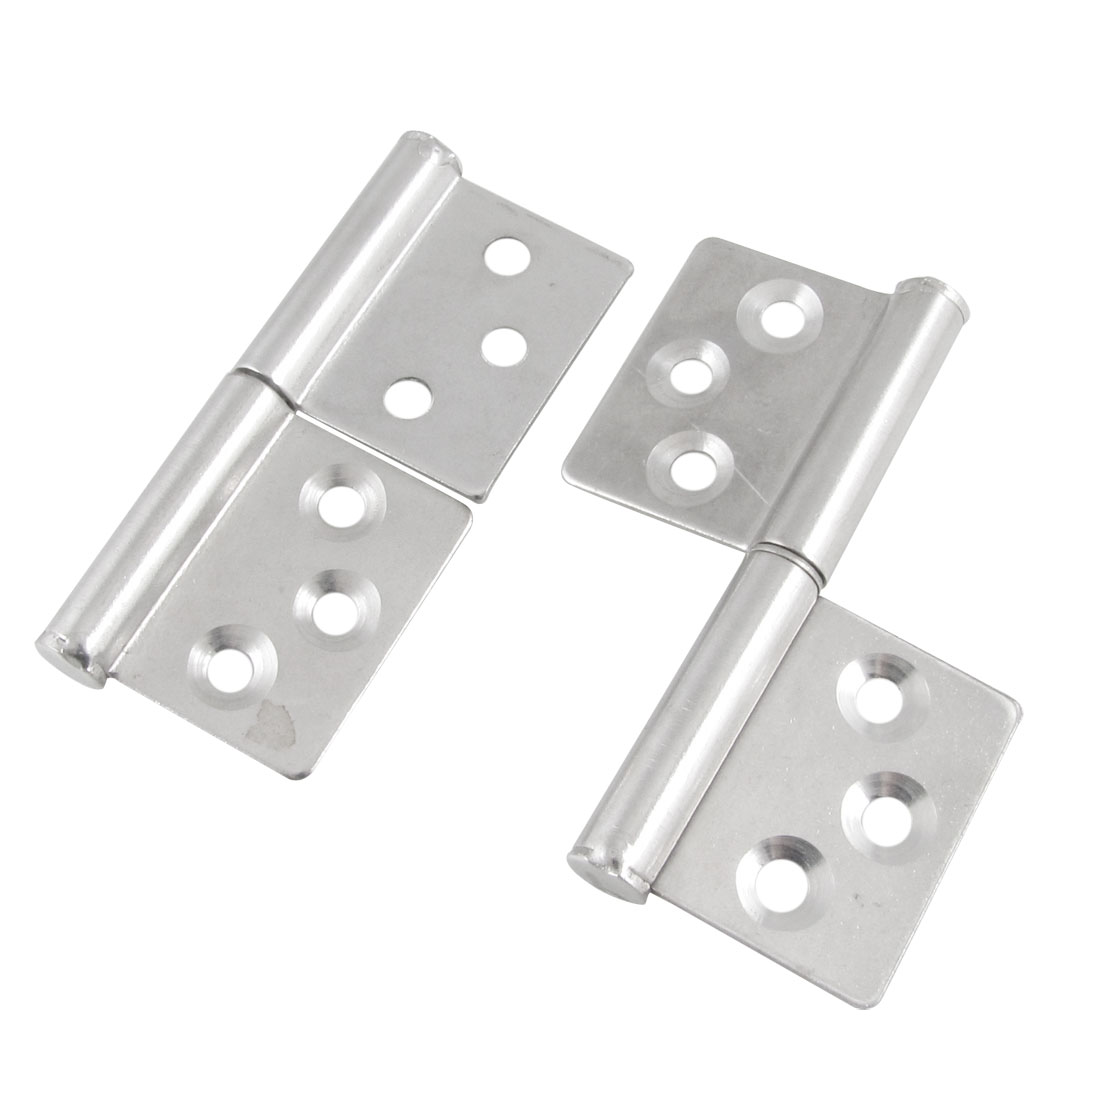 "2 Pcs 3"" Long Metal Rotation Door Window Cabinet Butt Hinge Silver Tone"